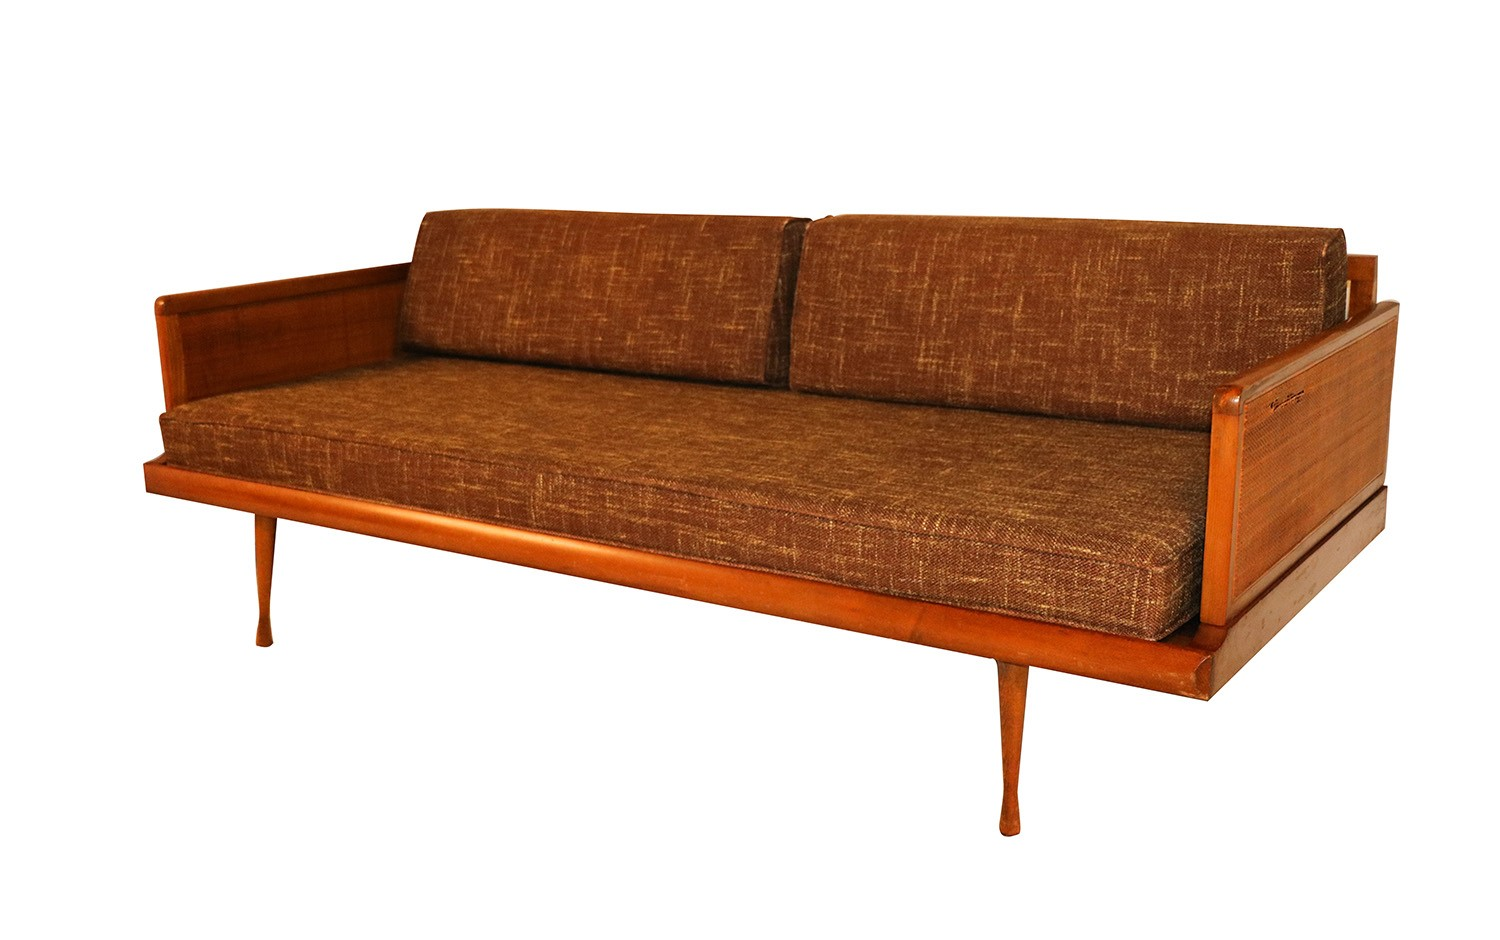 Mid Century Modern Convertible Sofa Peter Hvidt Style on coffee tables of the 1950s